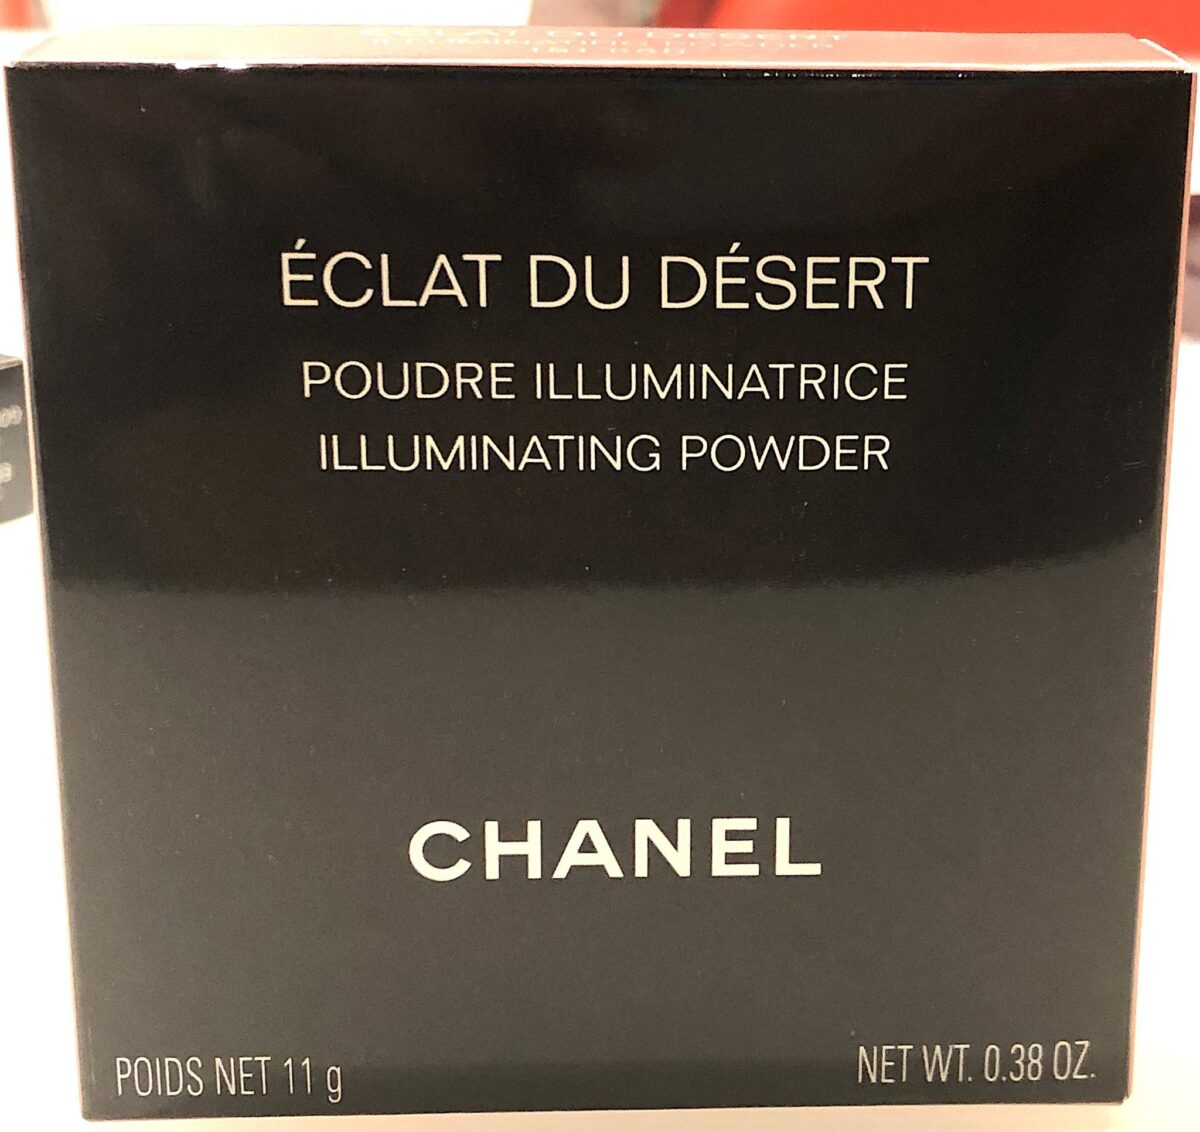 OUTER BOX FOR ECLAT DU DESERT ILLUMINATING POWDER